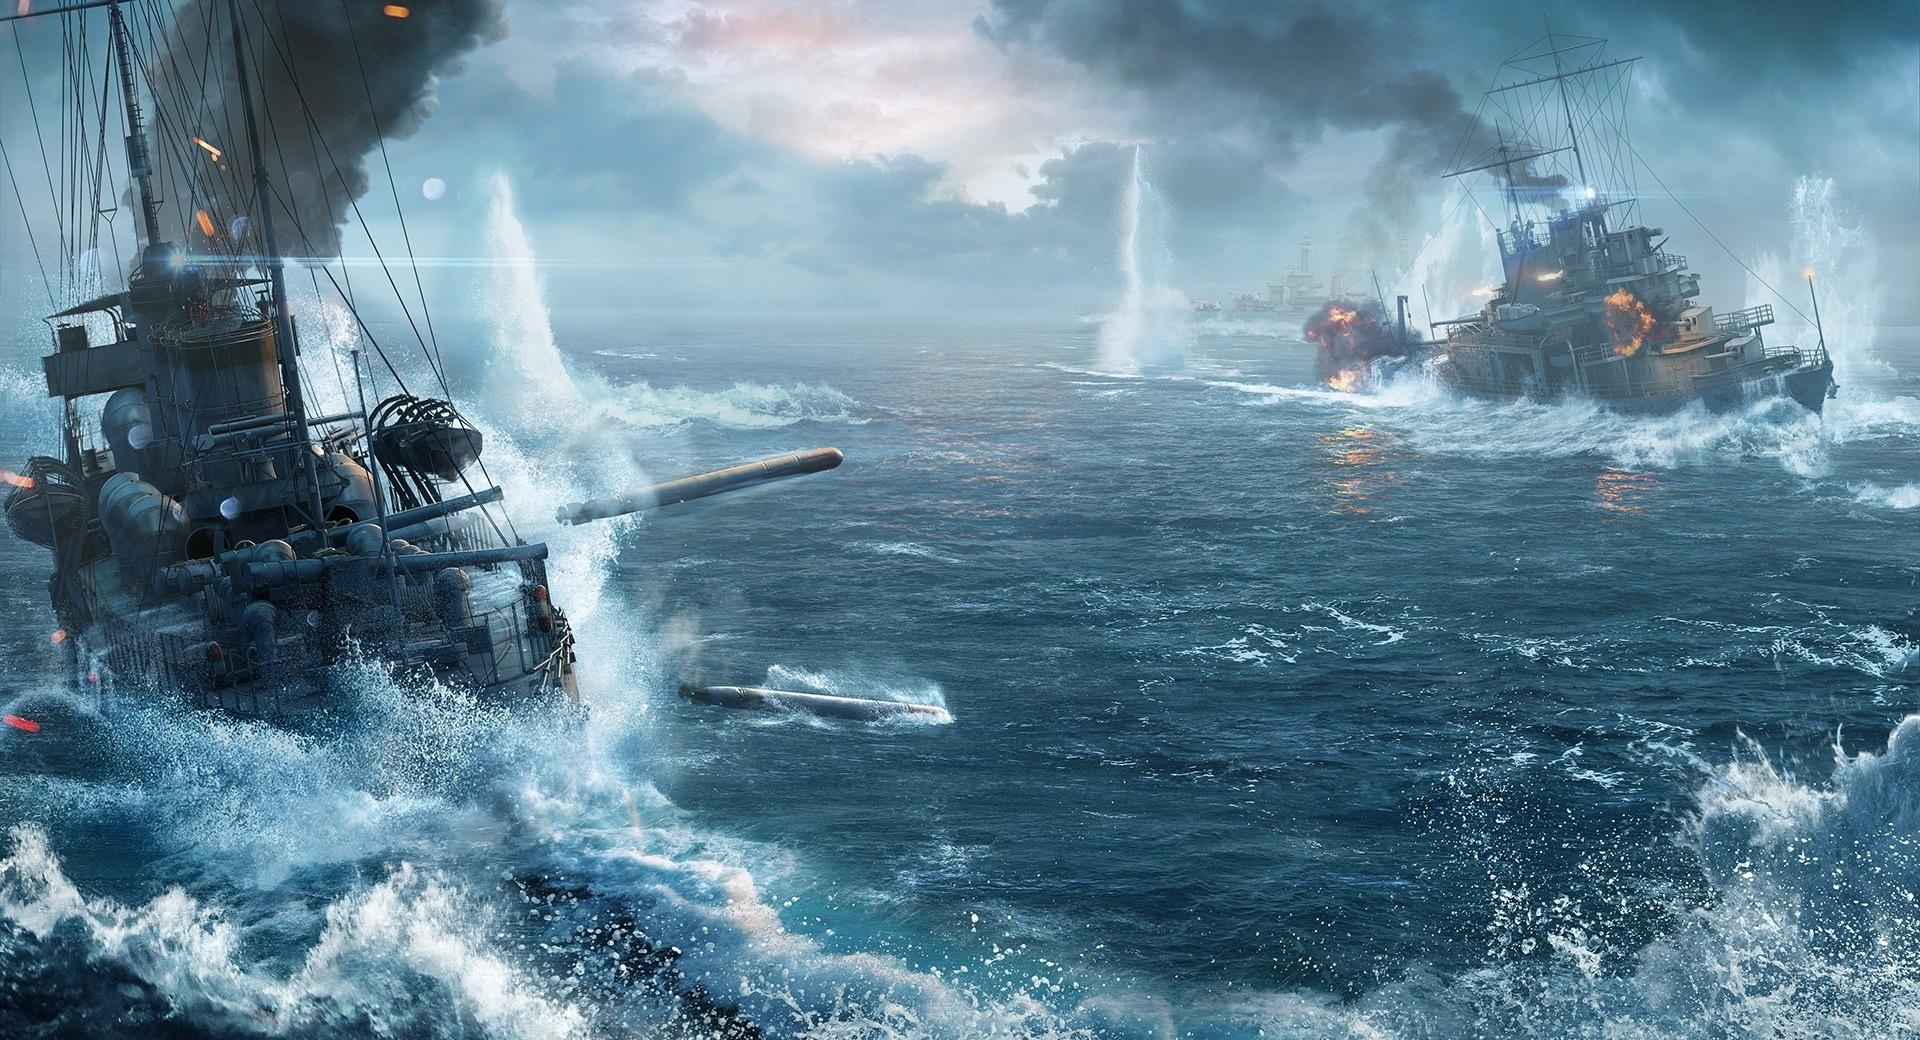 World Of Warship Ships wallpapers HD quality